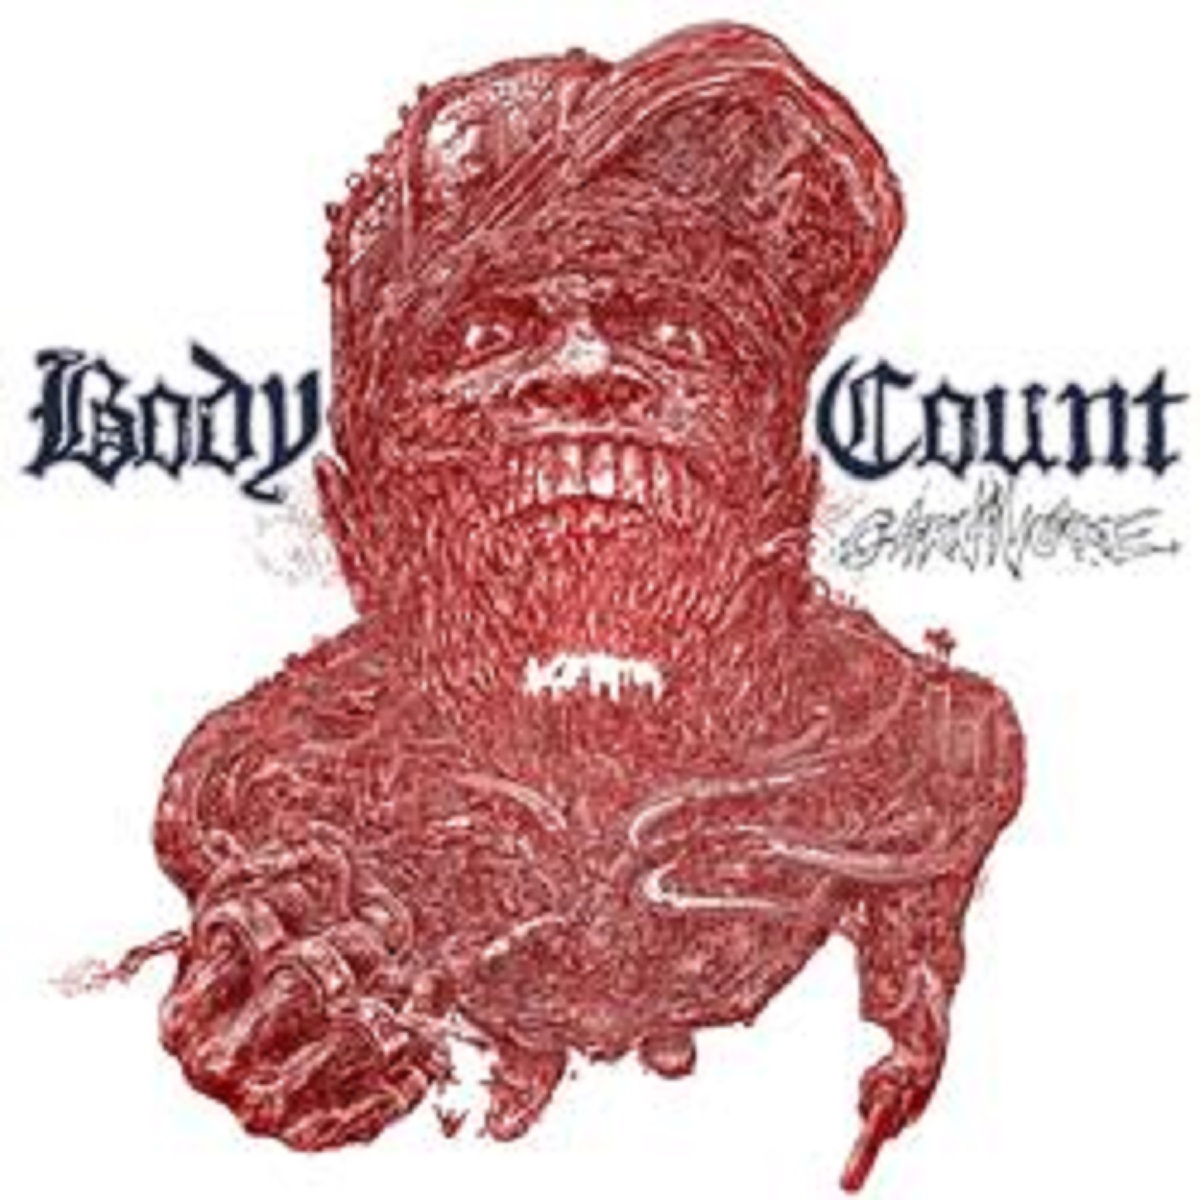 Review: Body Count – Carnivore